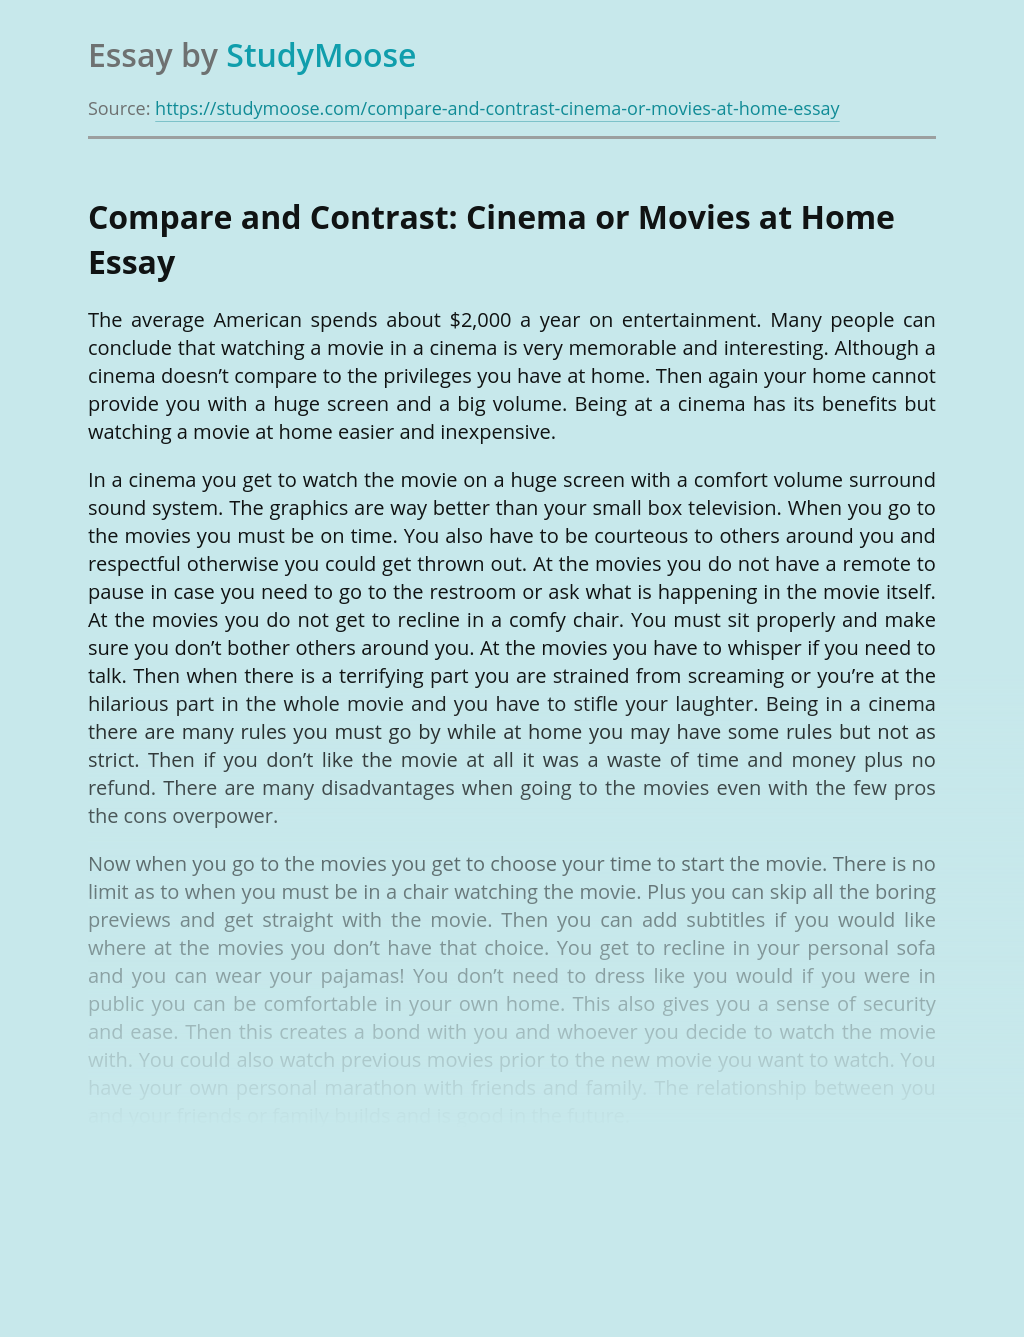 Compare and Contrast: Cinema or Movies at Home